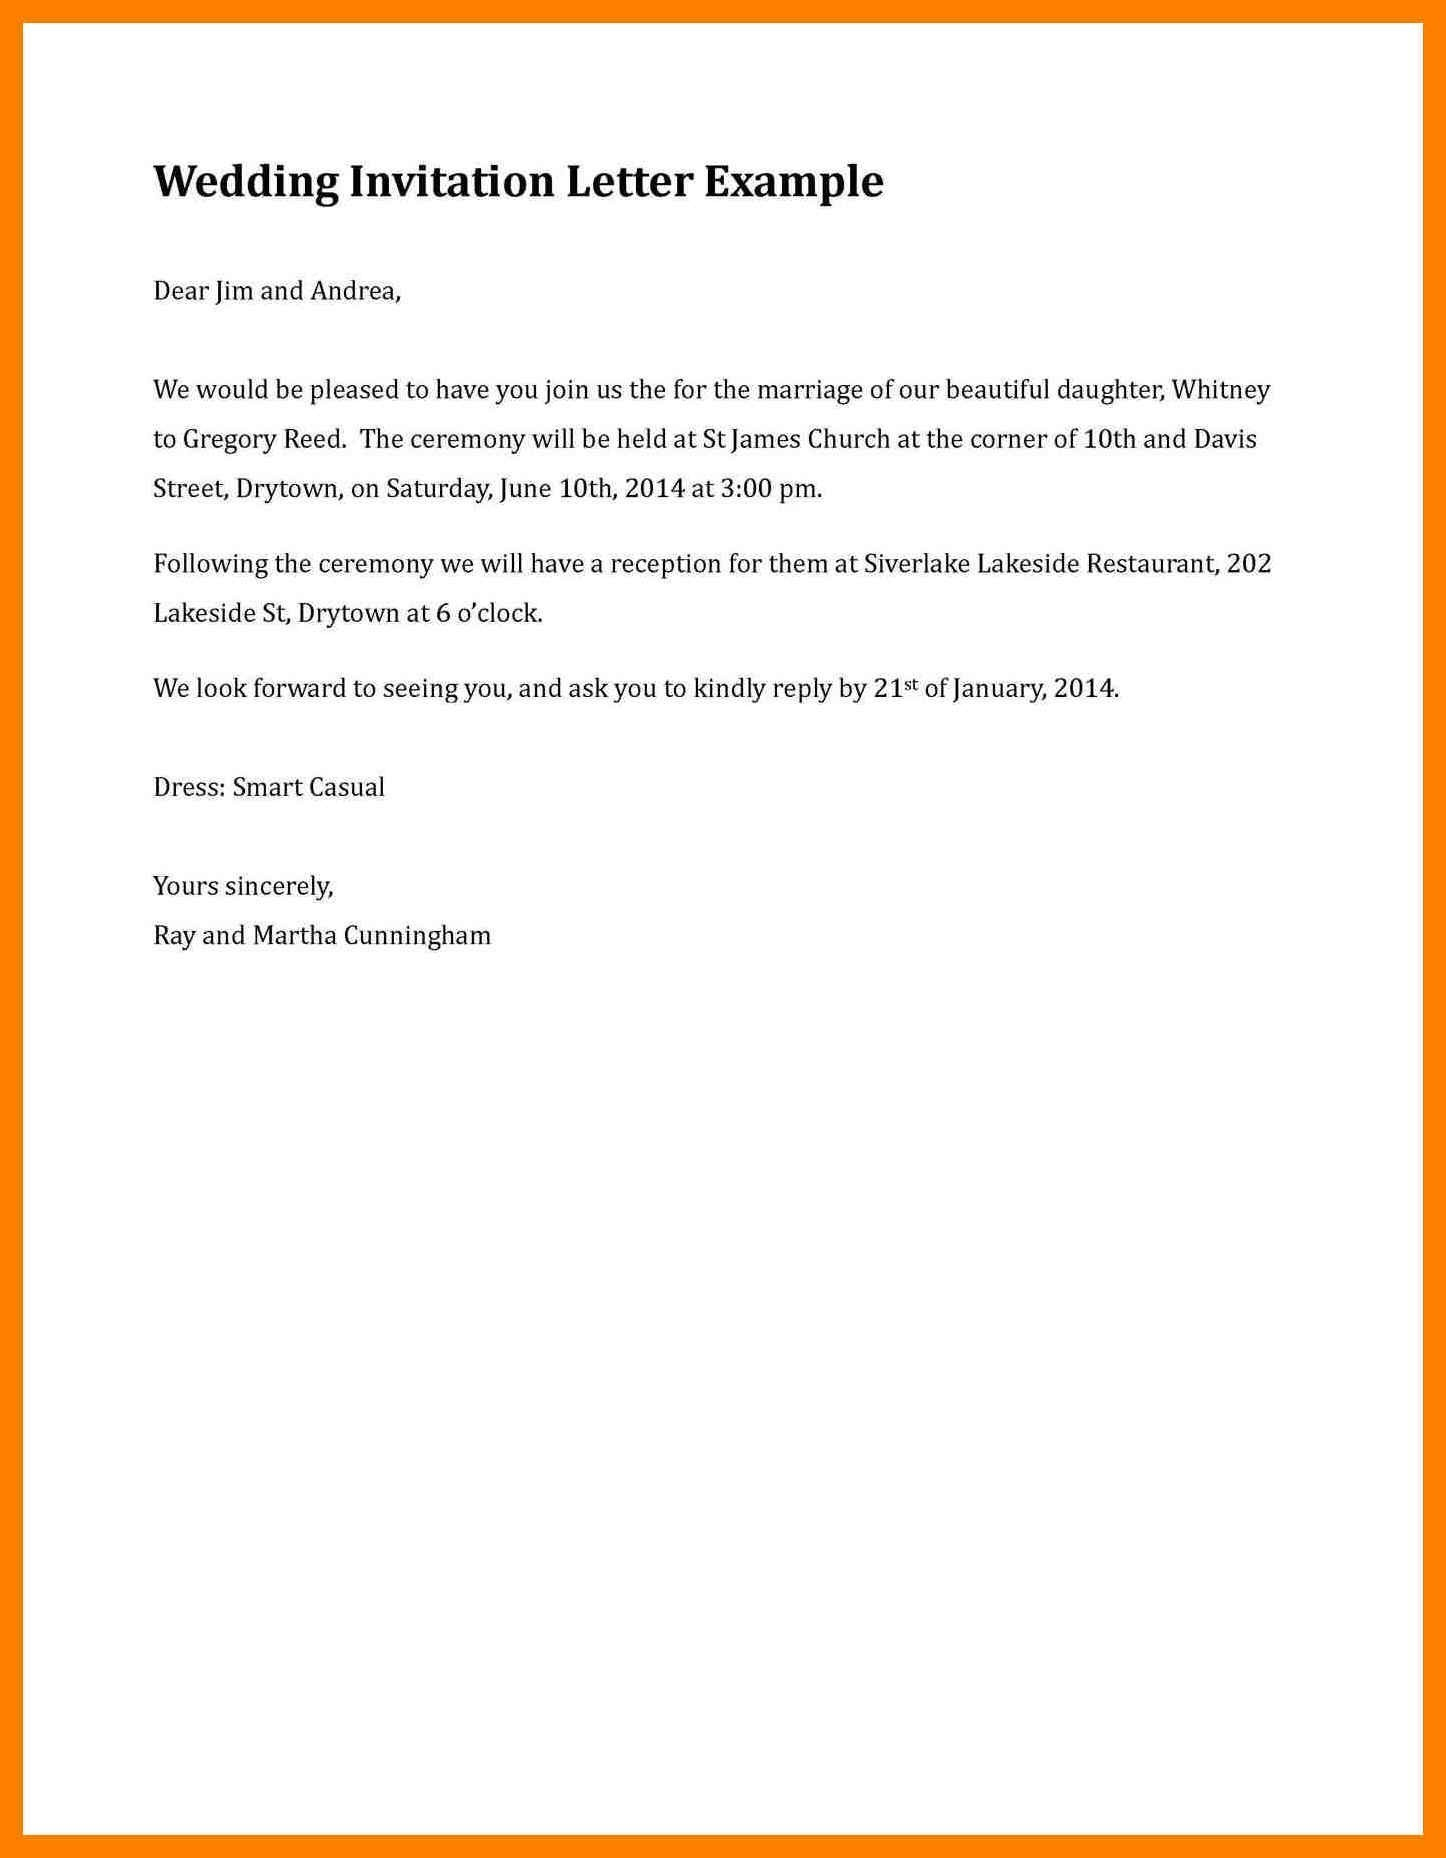 Vacation Request Letter Template - Leave Letter format for Naming Ceremony New format Request Letter to